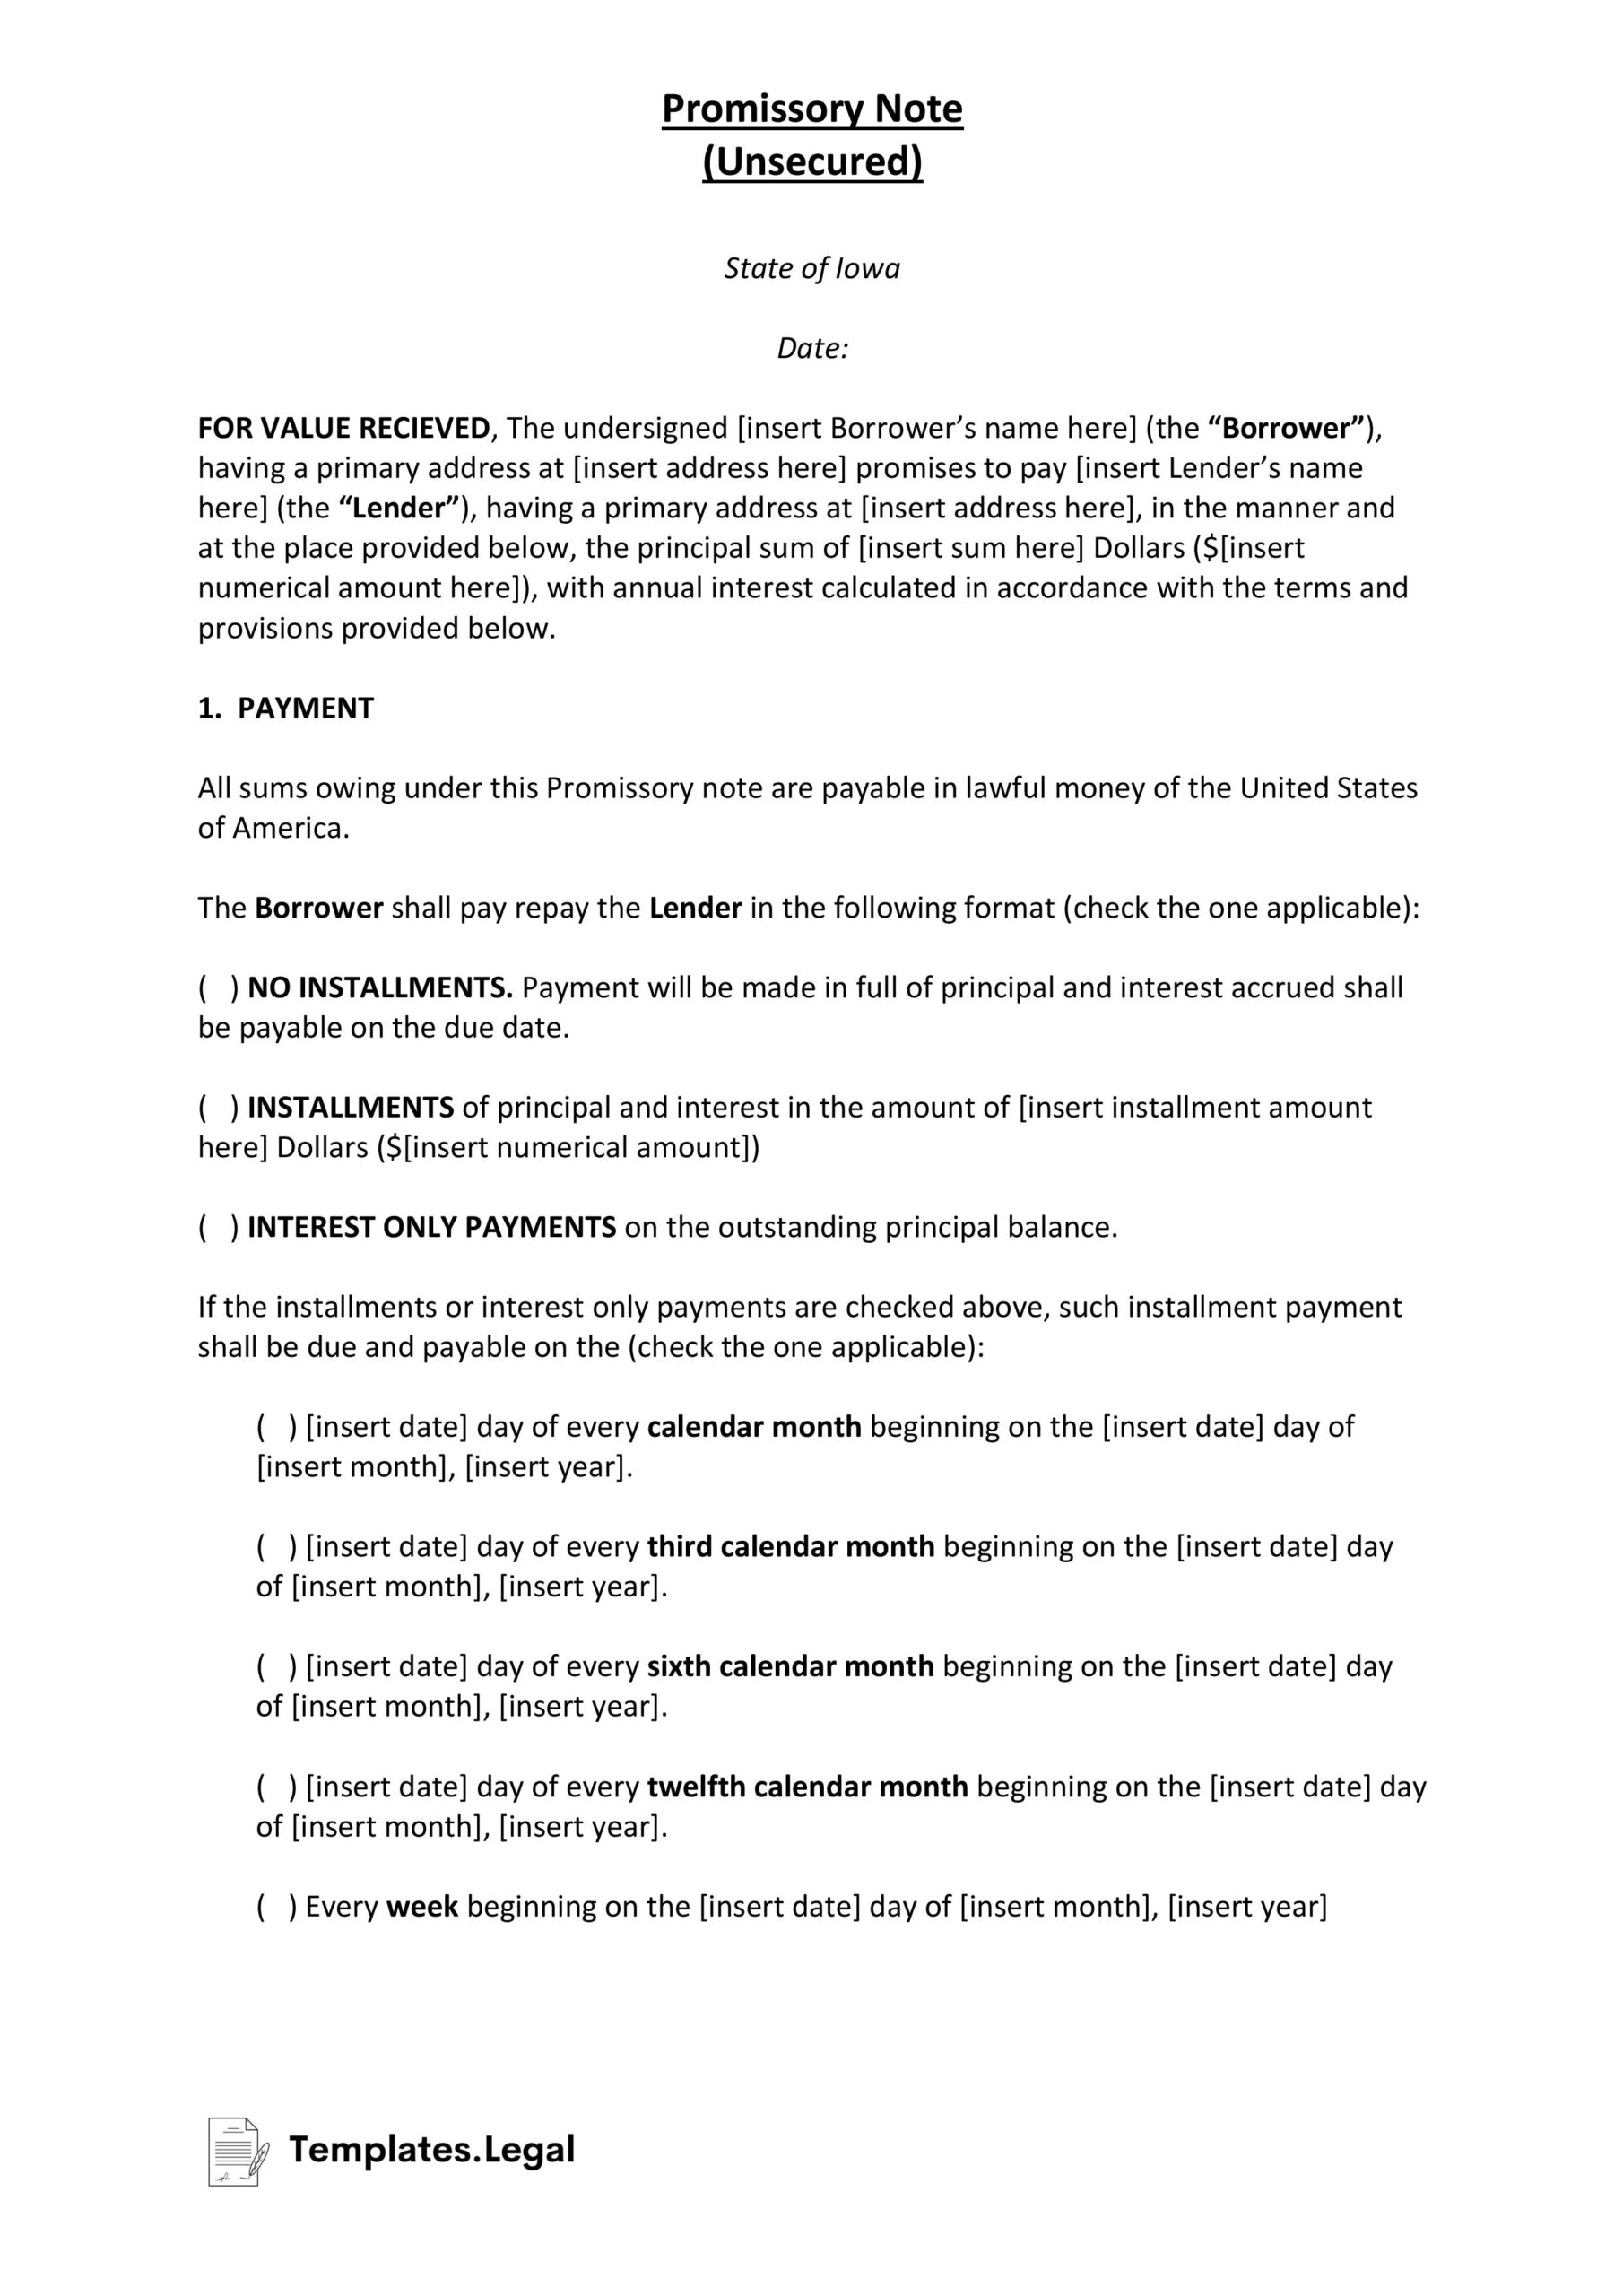 Iowa Unsecured Promissory Note - Templates.Legal